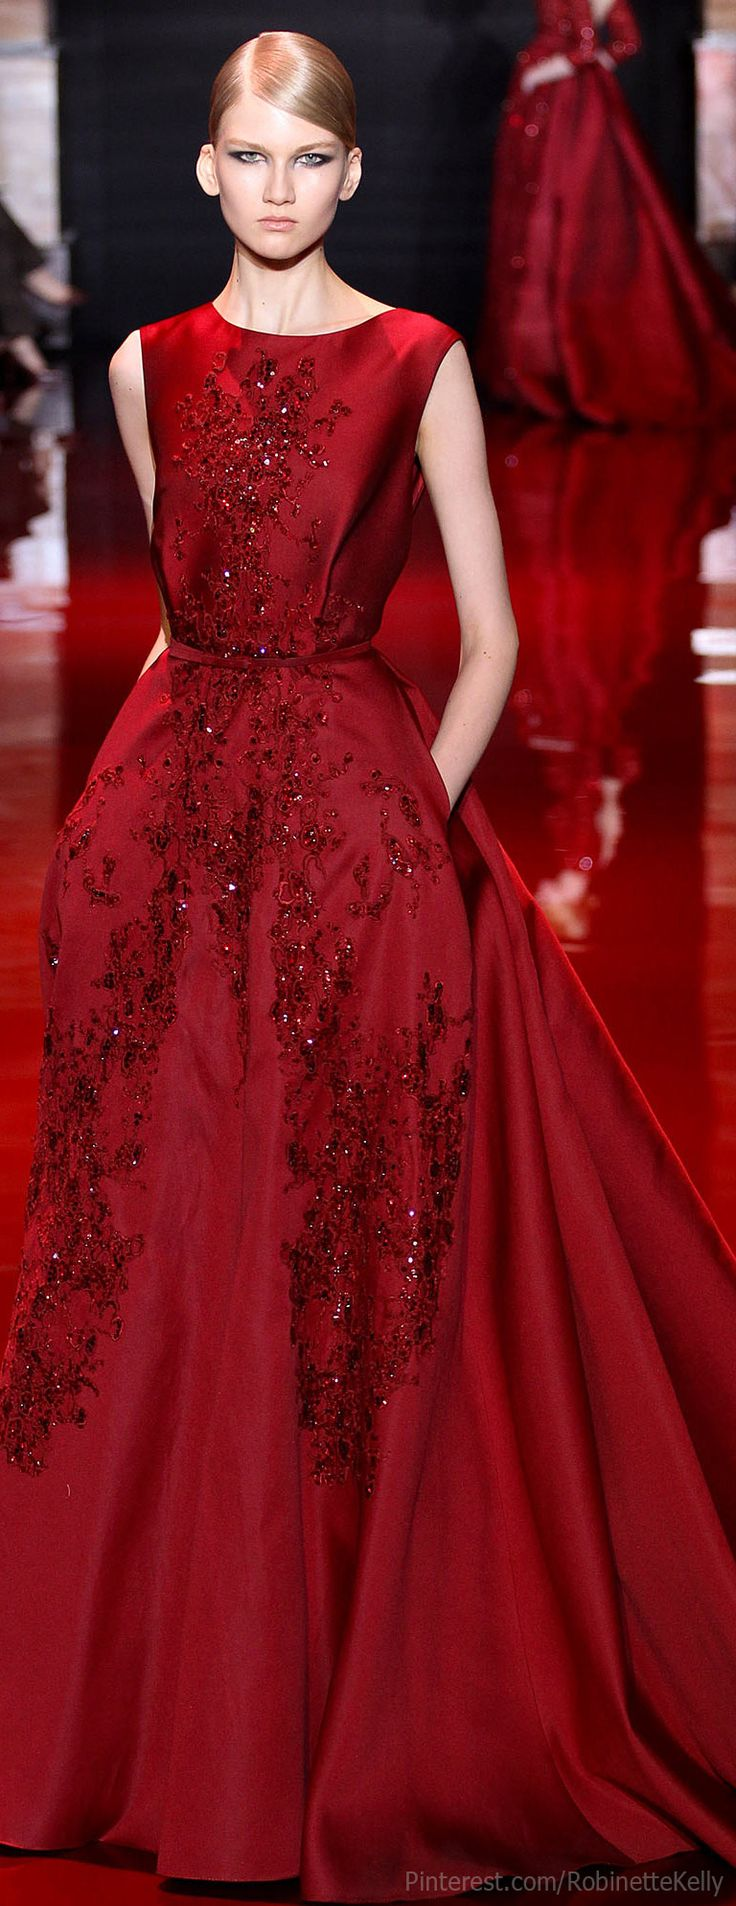 Elie saab haute couture f w 2013 red pinterest for Haute couture red